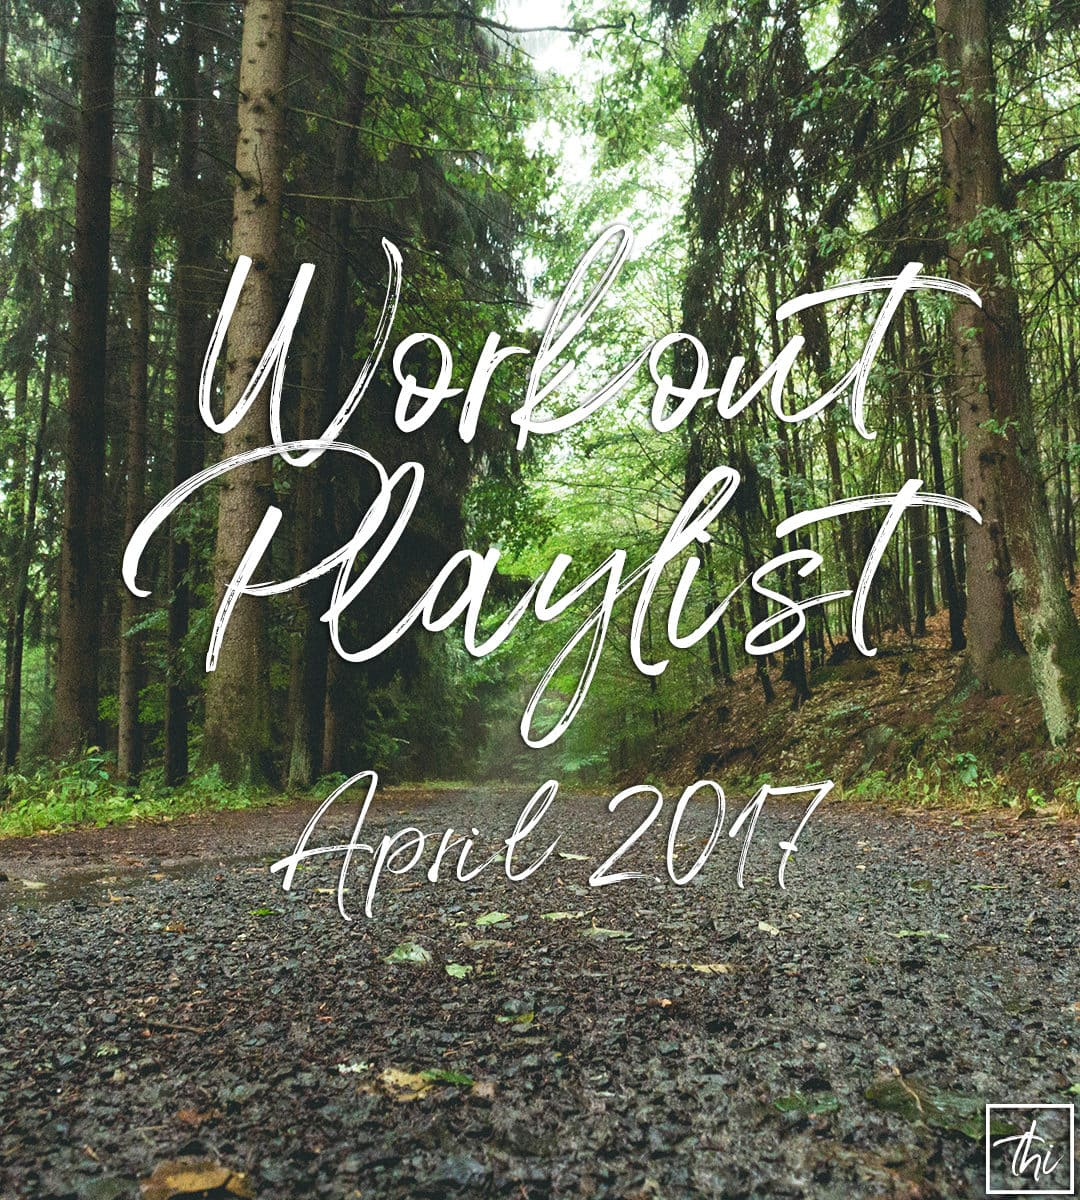 Workout Playlist April 2017 - 25 awesome new fast-paced songs to motivate you to work out and keep moving.